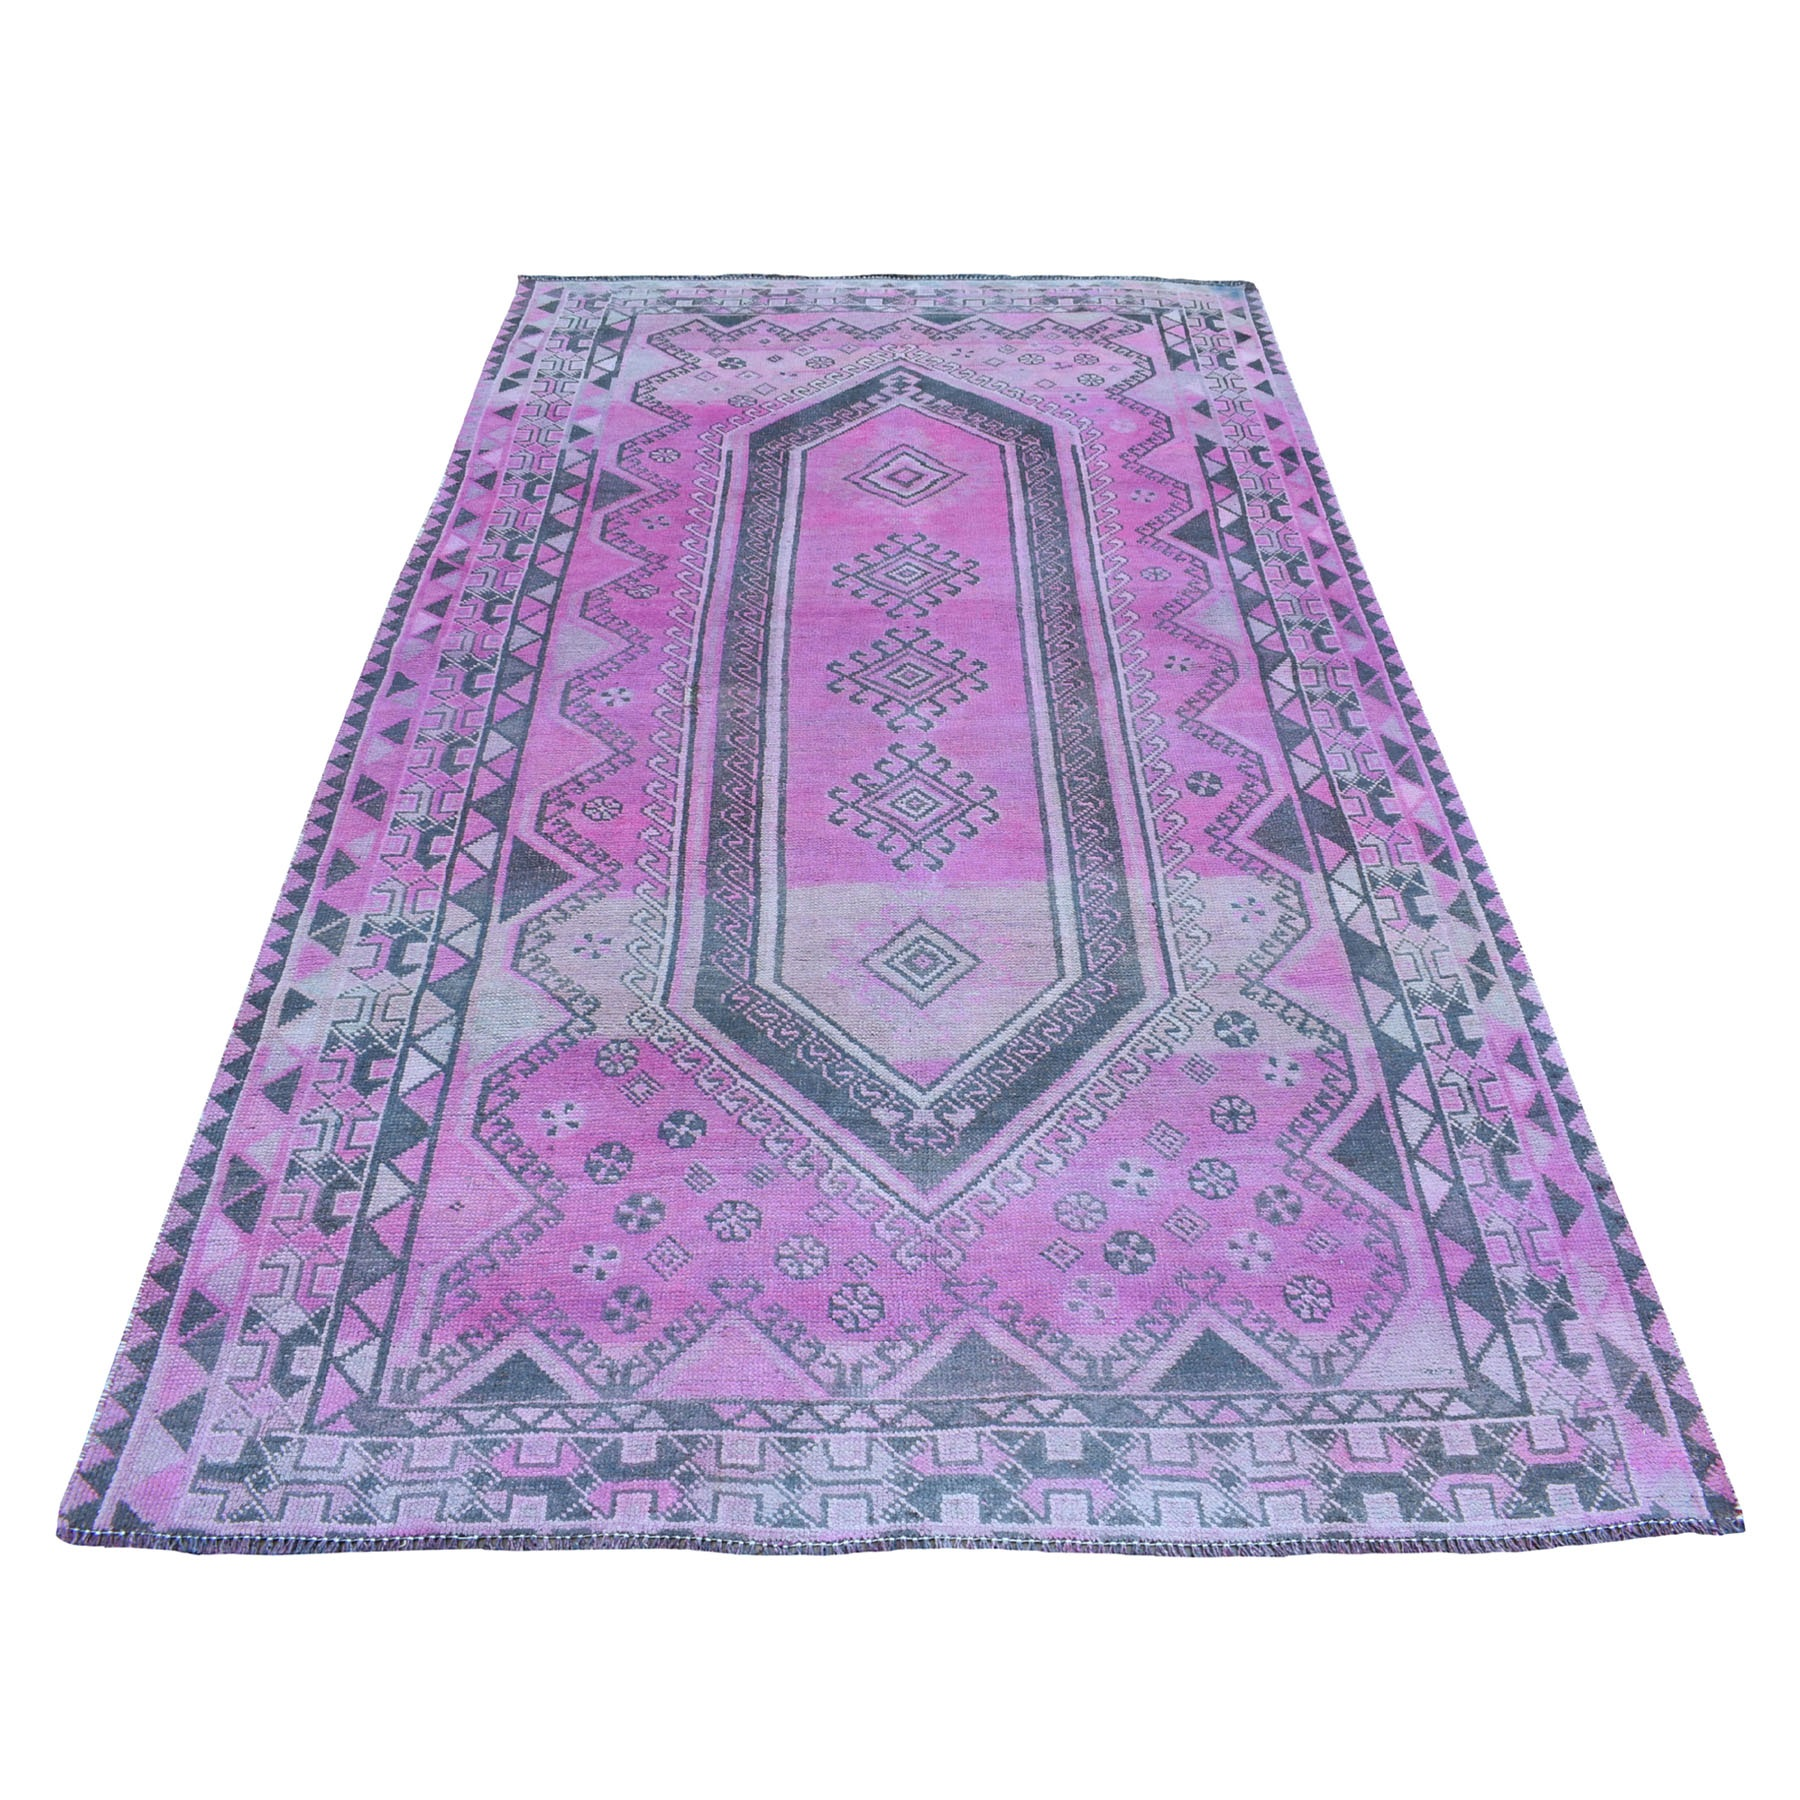 "5'x8'9"" Pink Vintage And Worn Down Overdyed Persian Shiraz Hand Woven Bohemian Rug"